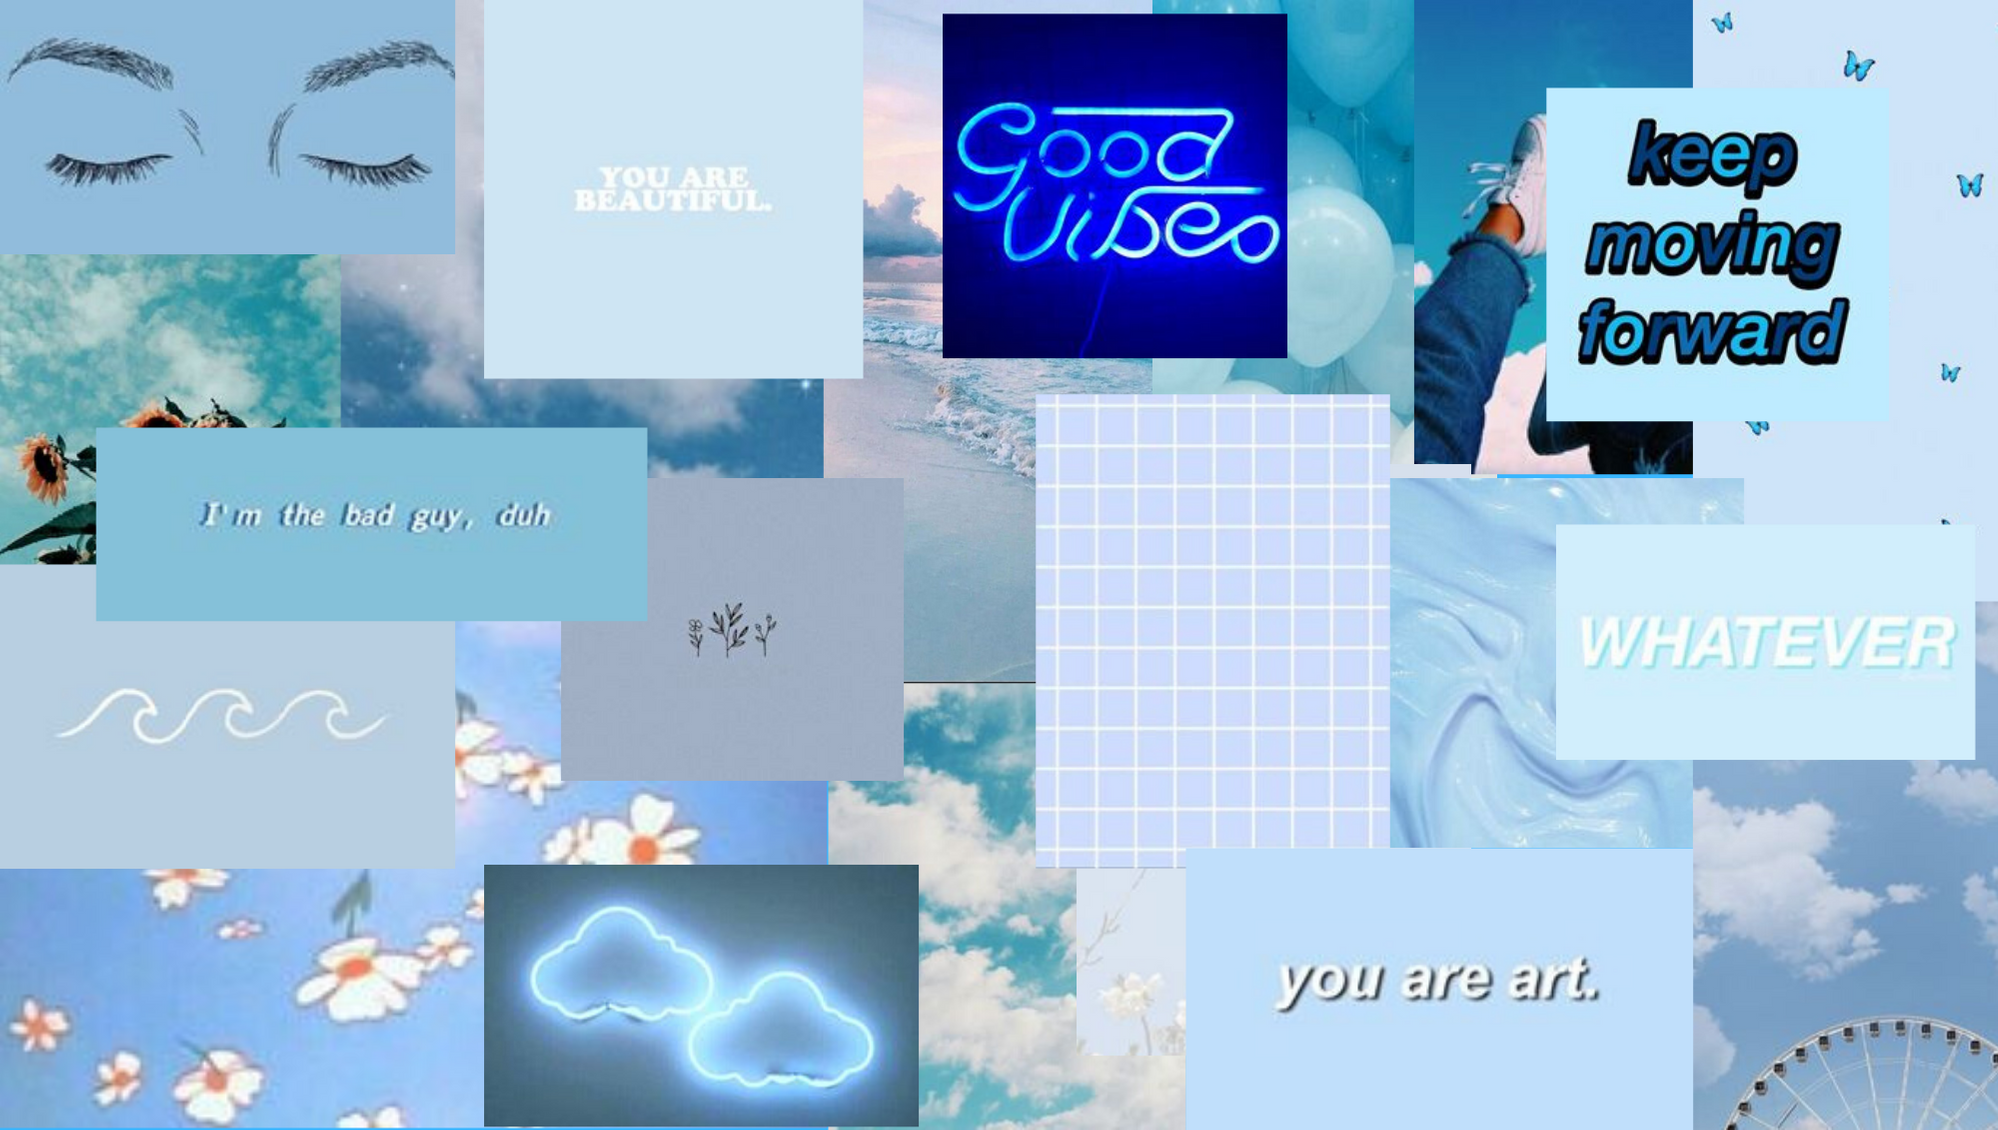 Aesthetic Wallpaper Laptop Soft Baby Pastel Blue In 2020 Aesthetic Desktop Wallpaper Laptop Wallpaper Desktop Wallpapers Computer Wallpaper Desktop Wallpapers